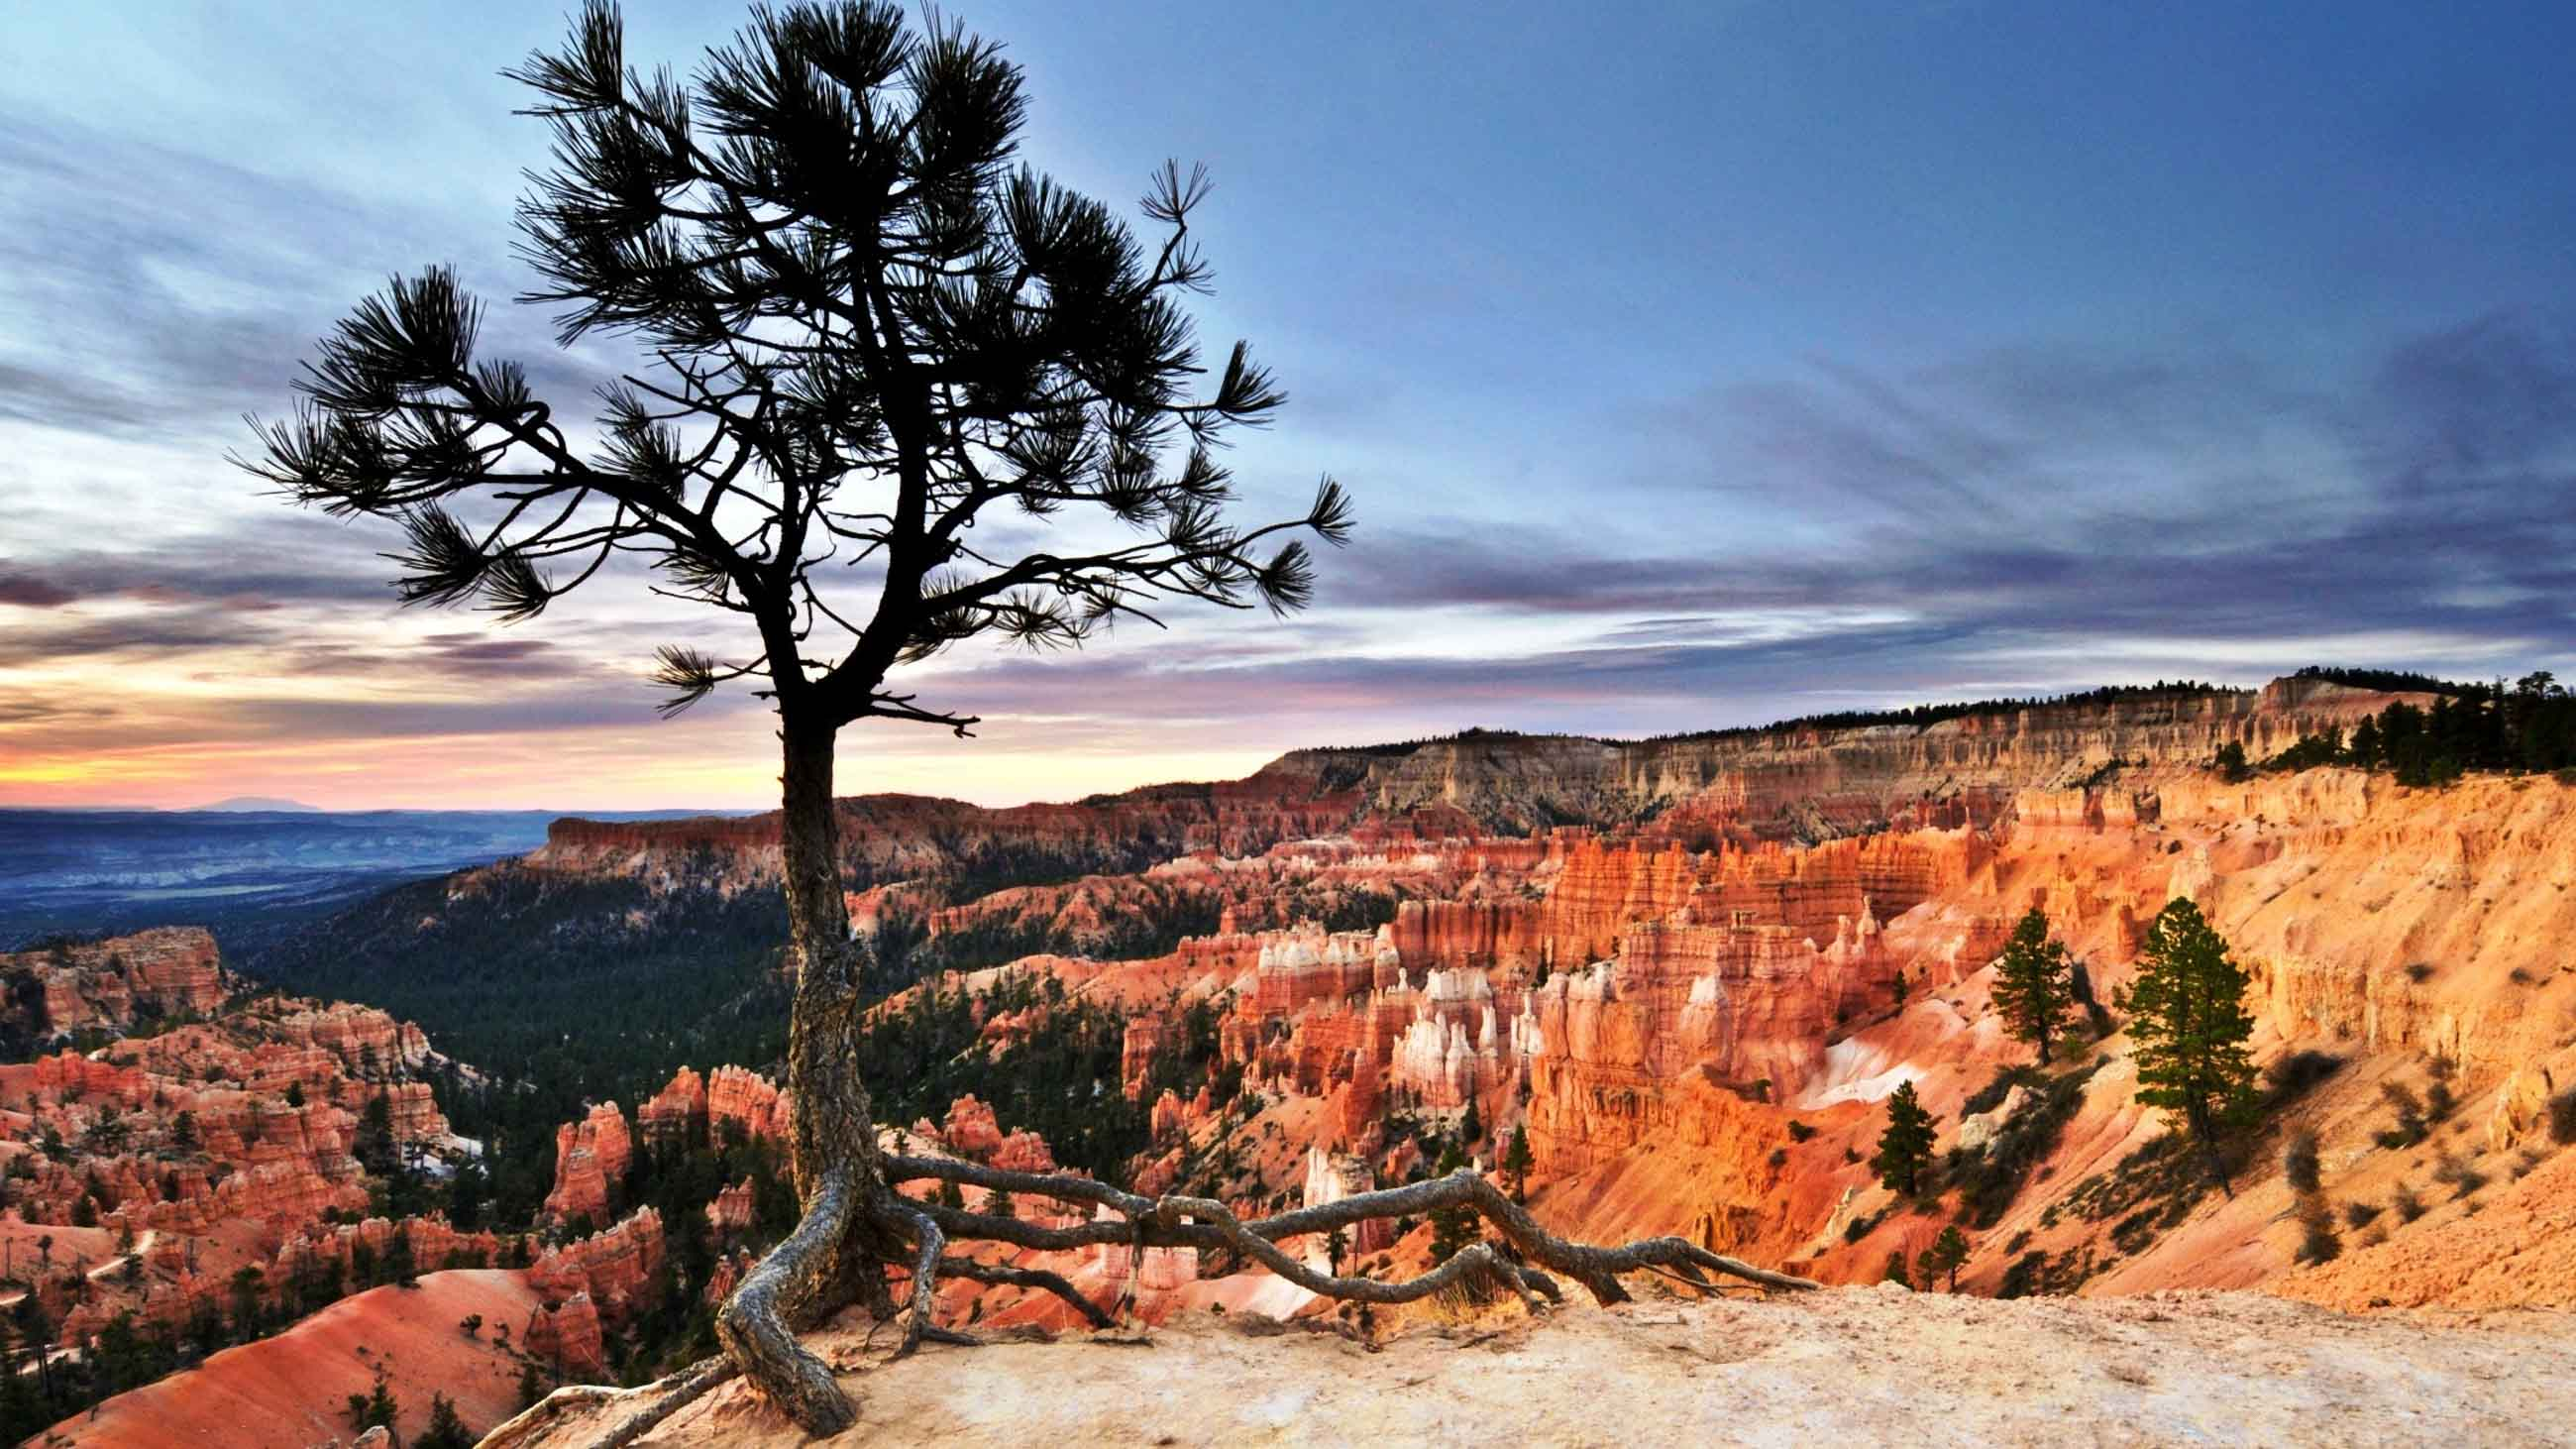 Cliffside tree overlooks Bryce Canyon National Park in Utah.